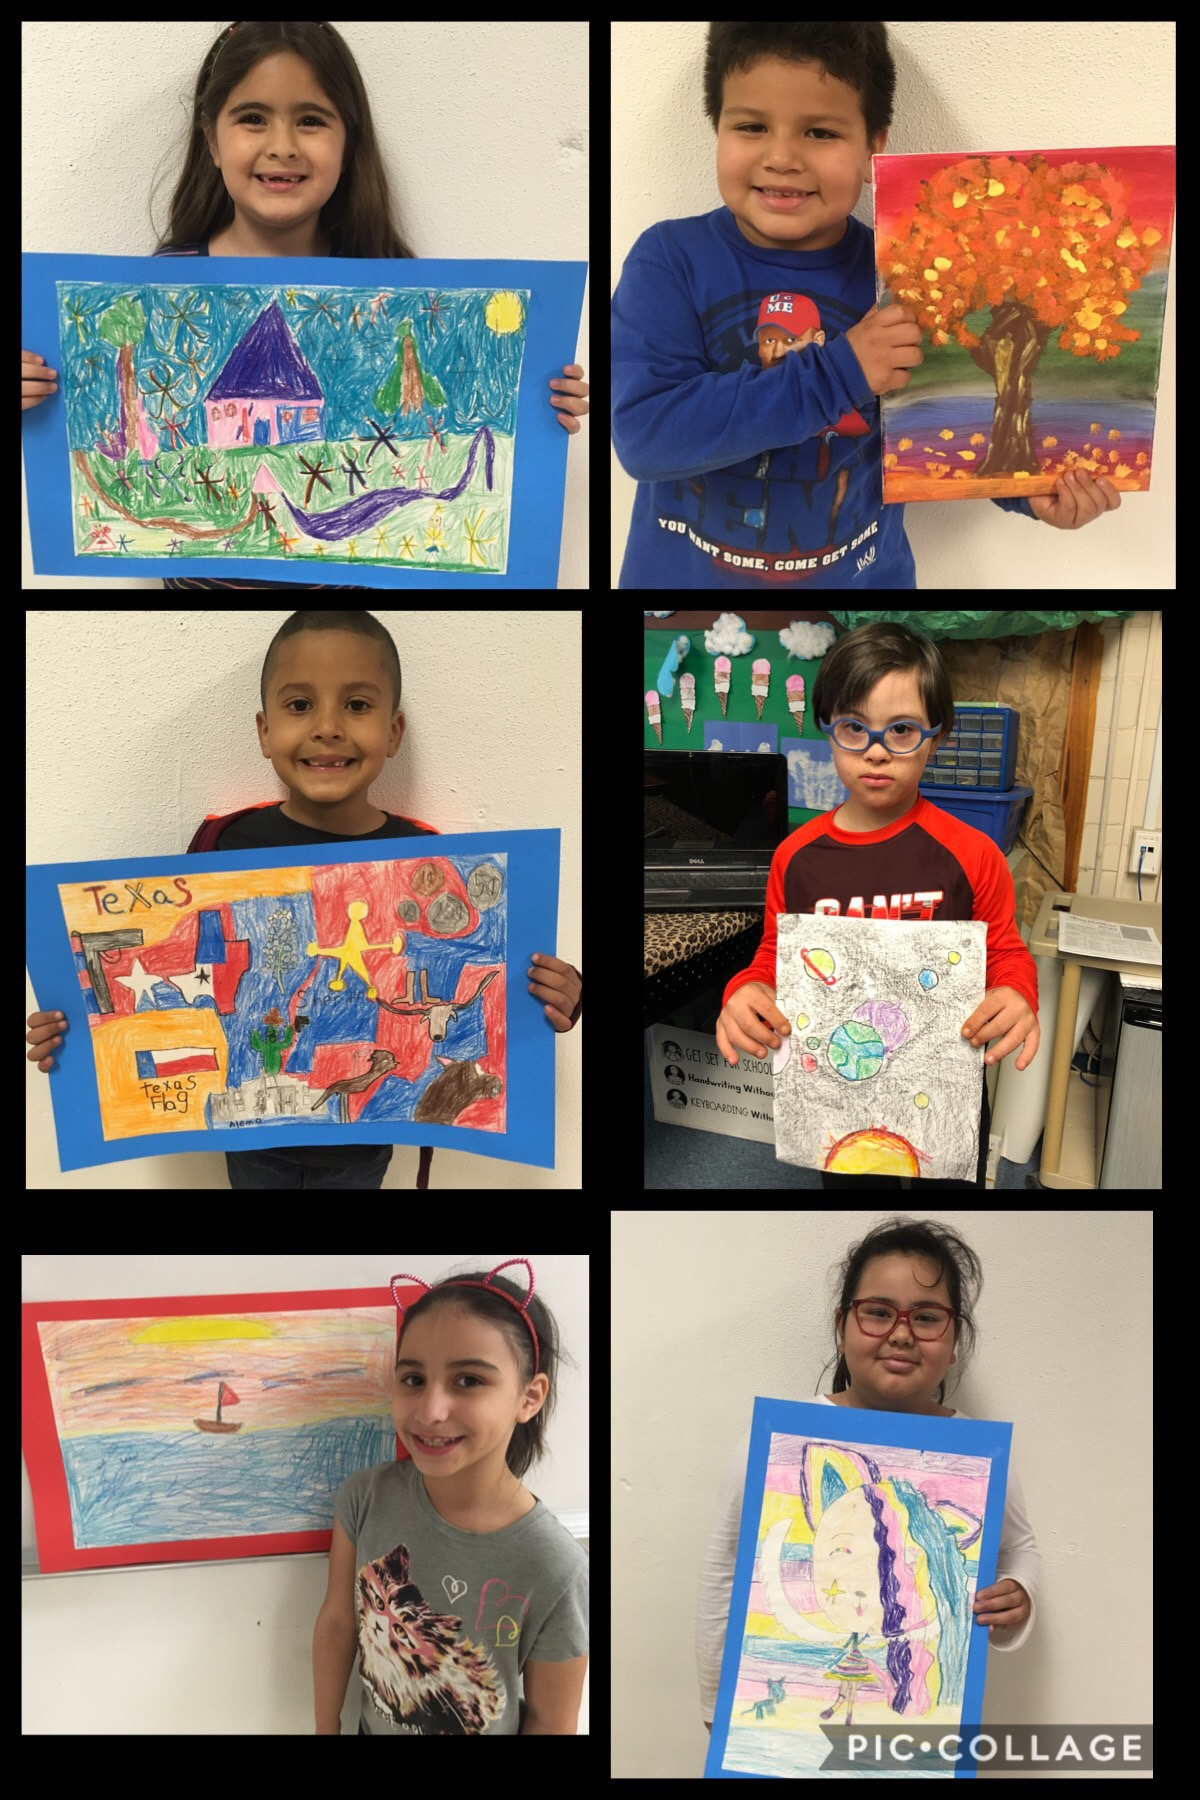 ELEMENTARY STUDENTS SHOWING THEIR PAINTINGS AND DRAWINGS.